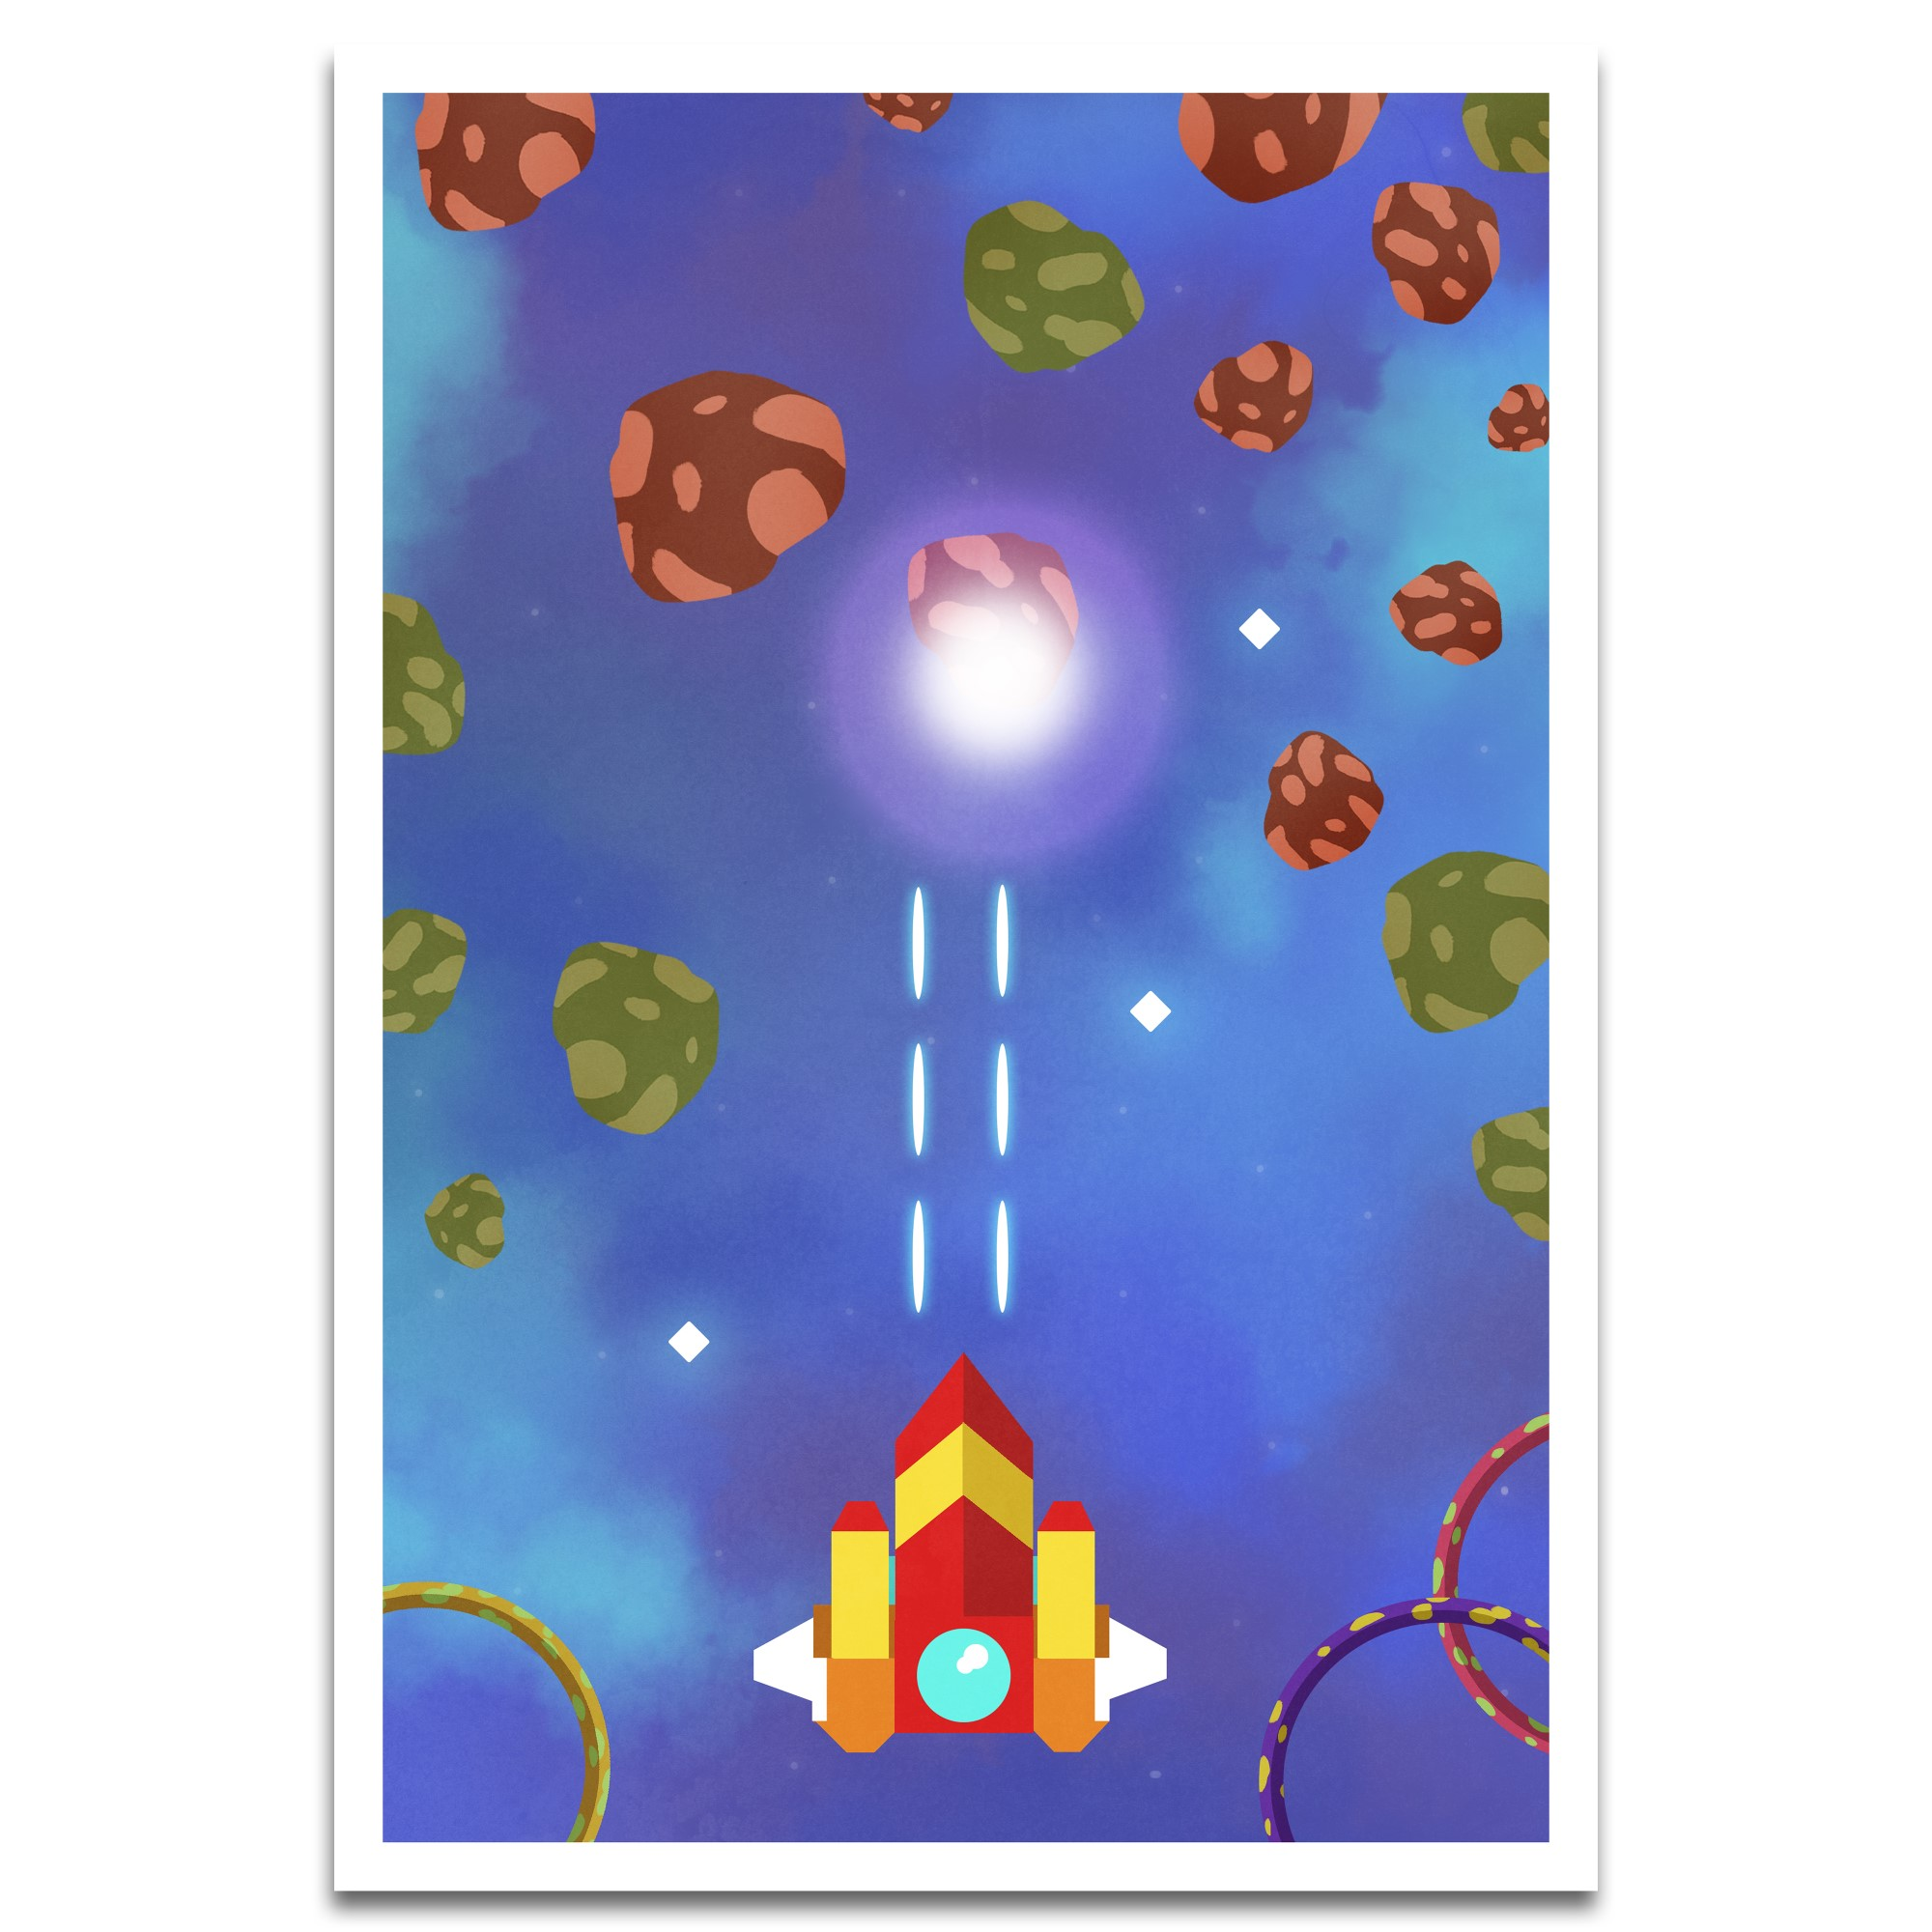 Visionary Prints 'To Different Worlds Print' | Gamer Wall Art - Red Castle with Mushrooms | Modern Contemporary Poster Print, 13x19 inch